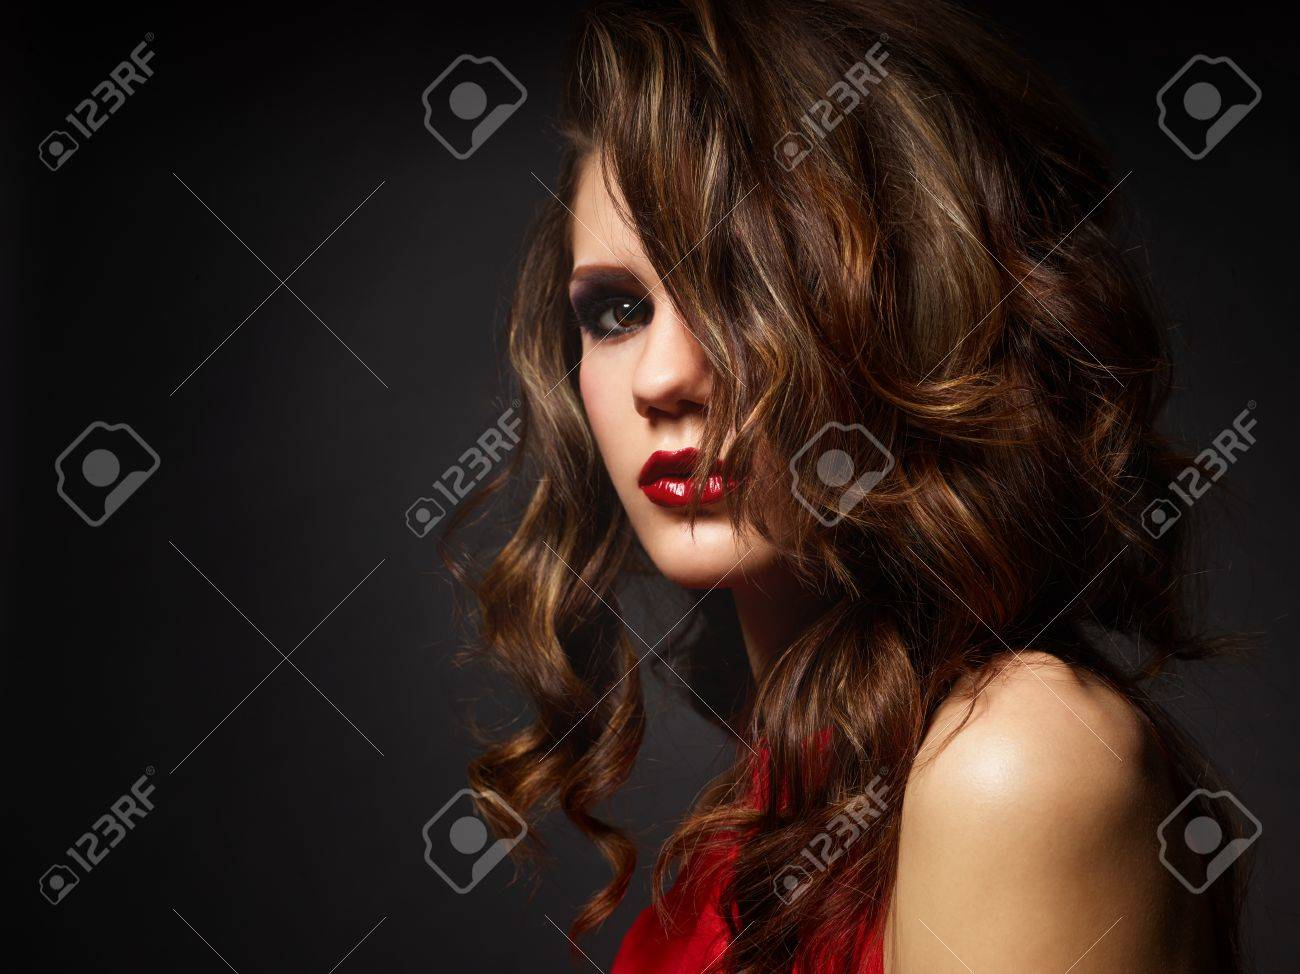 Closeup portrait of young seductive woman in a red dress Stock Photo - 13401603